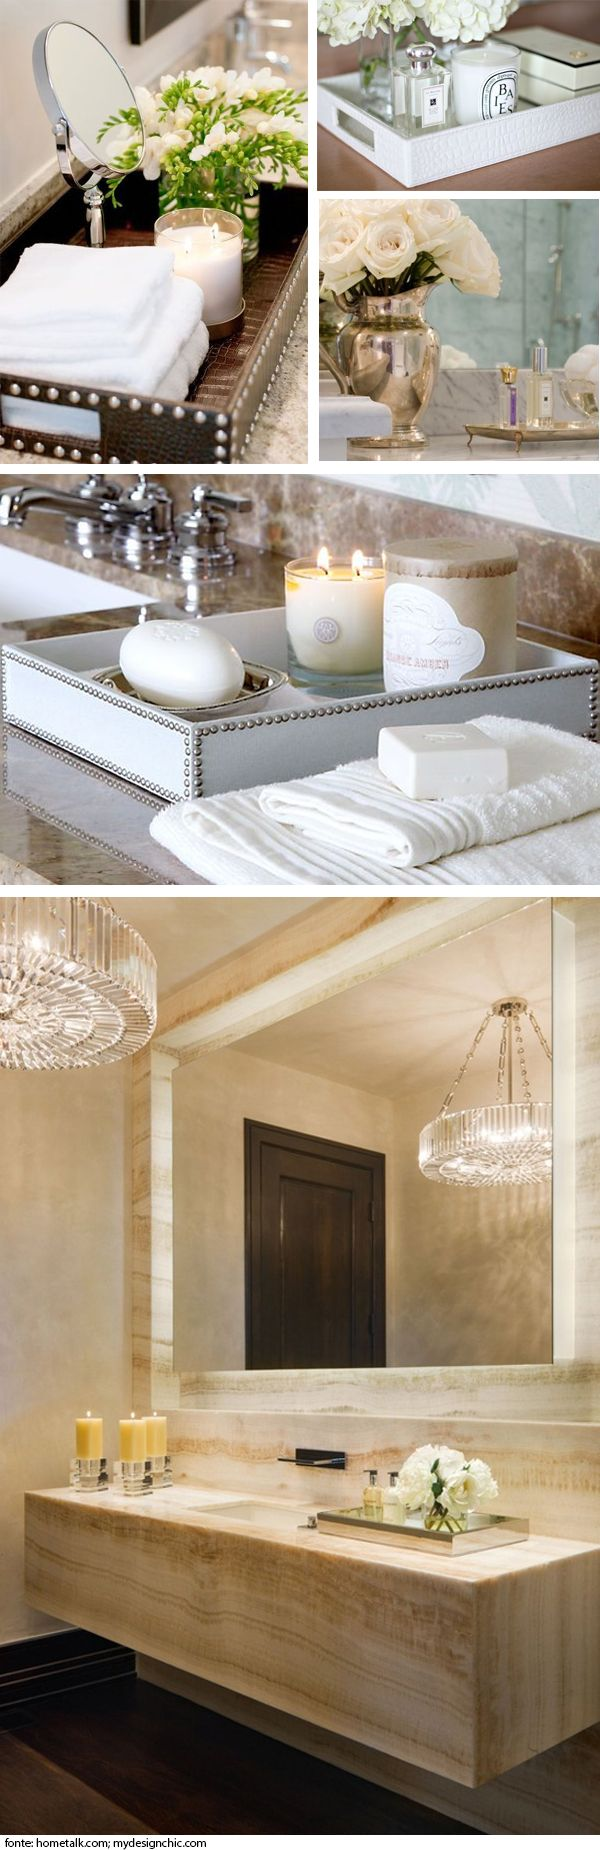 how Add a sophisticated touch to your bathroom | how to make your bathroom more luxurious